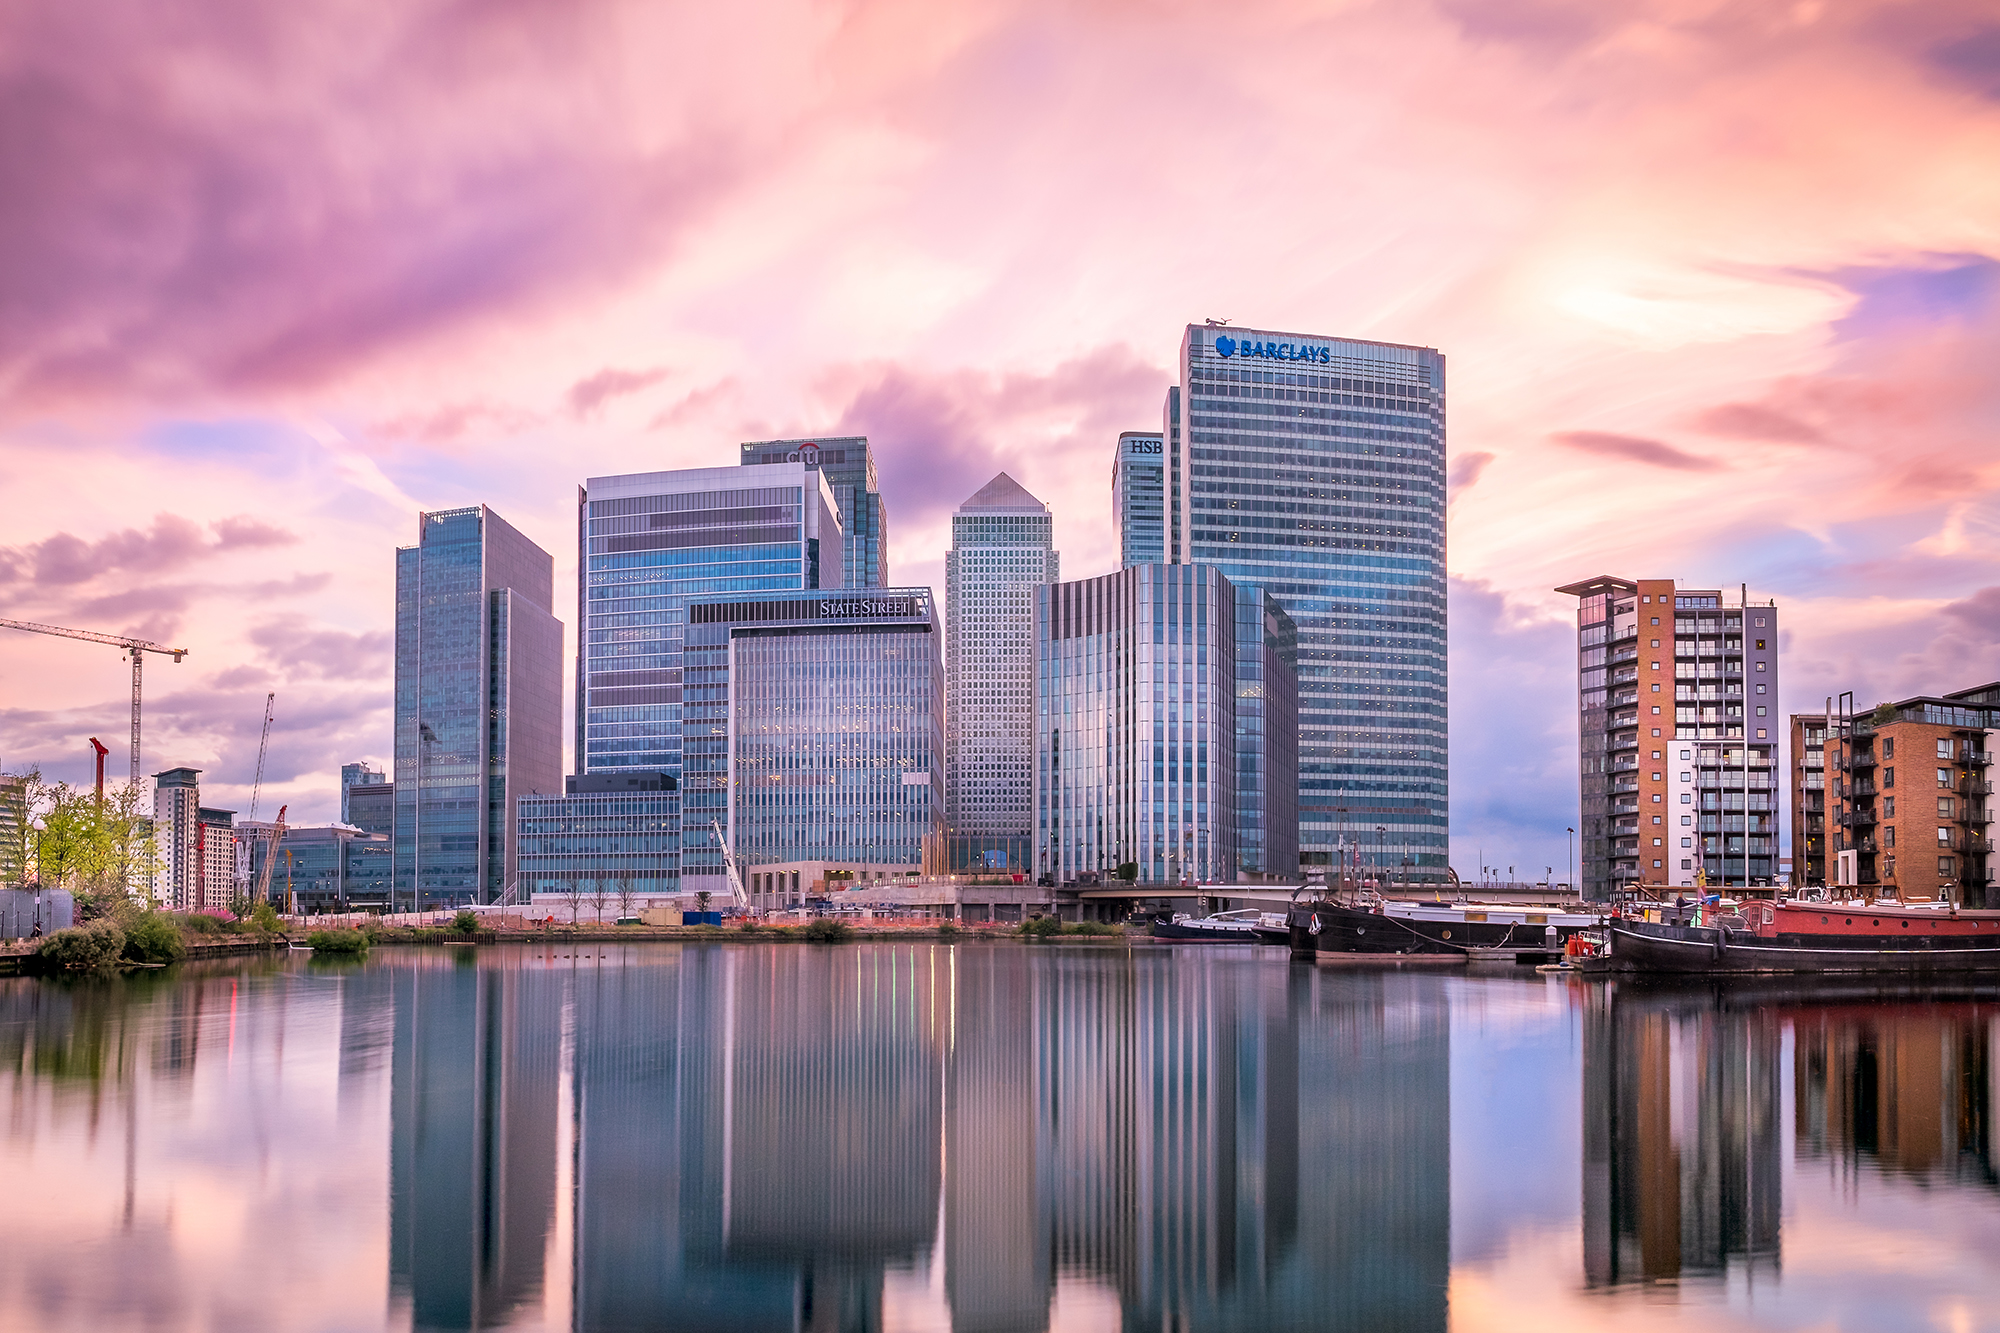 A panoramic photo of Canary Wharf at Sunset taken by Trevor Sherwin